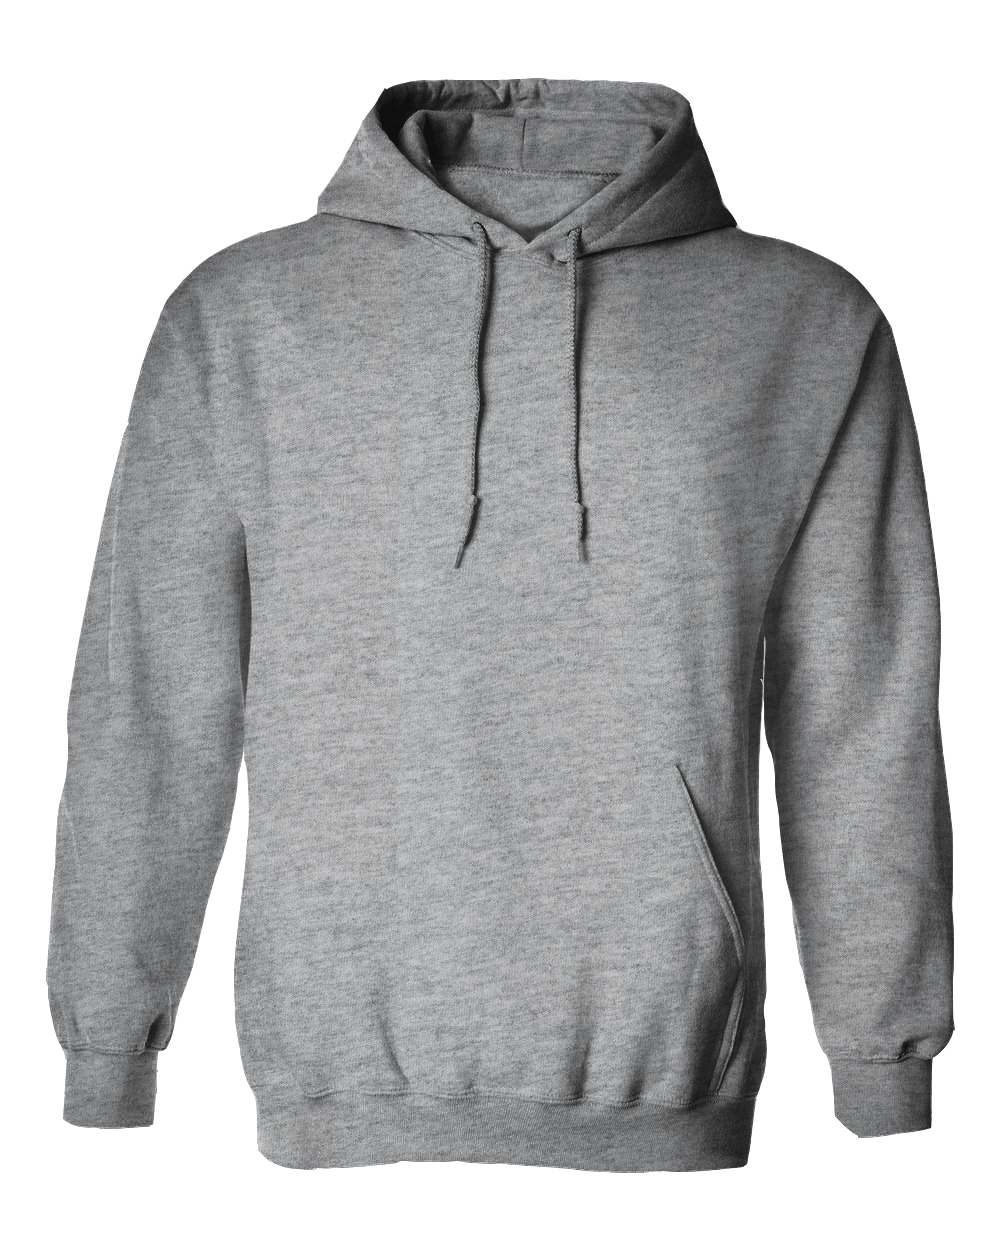 Jacket with a hoodie